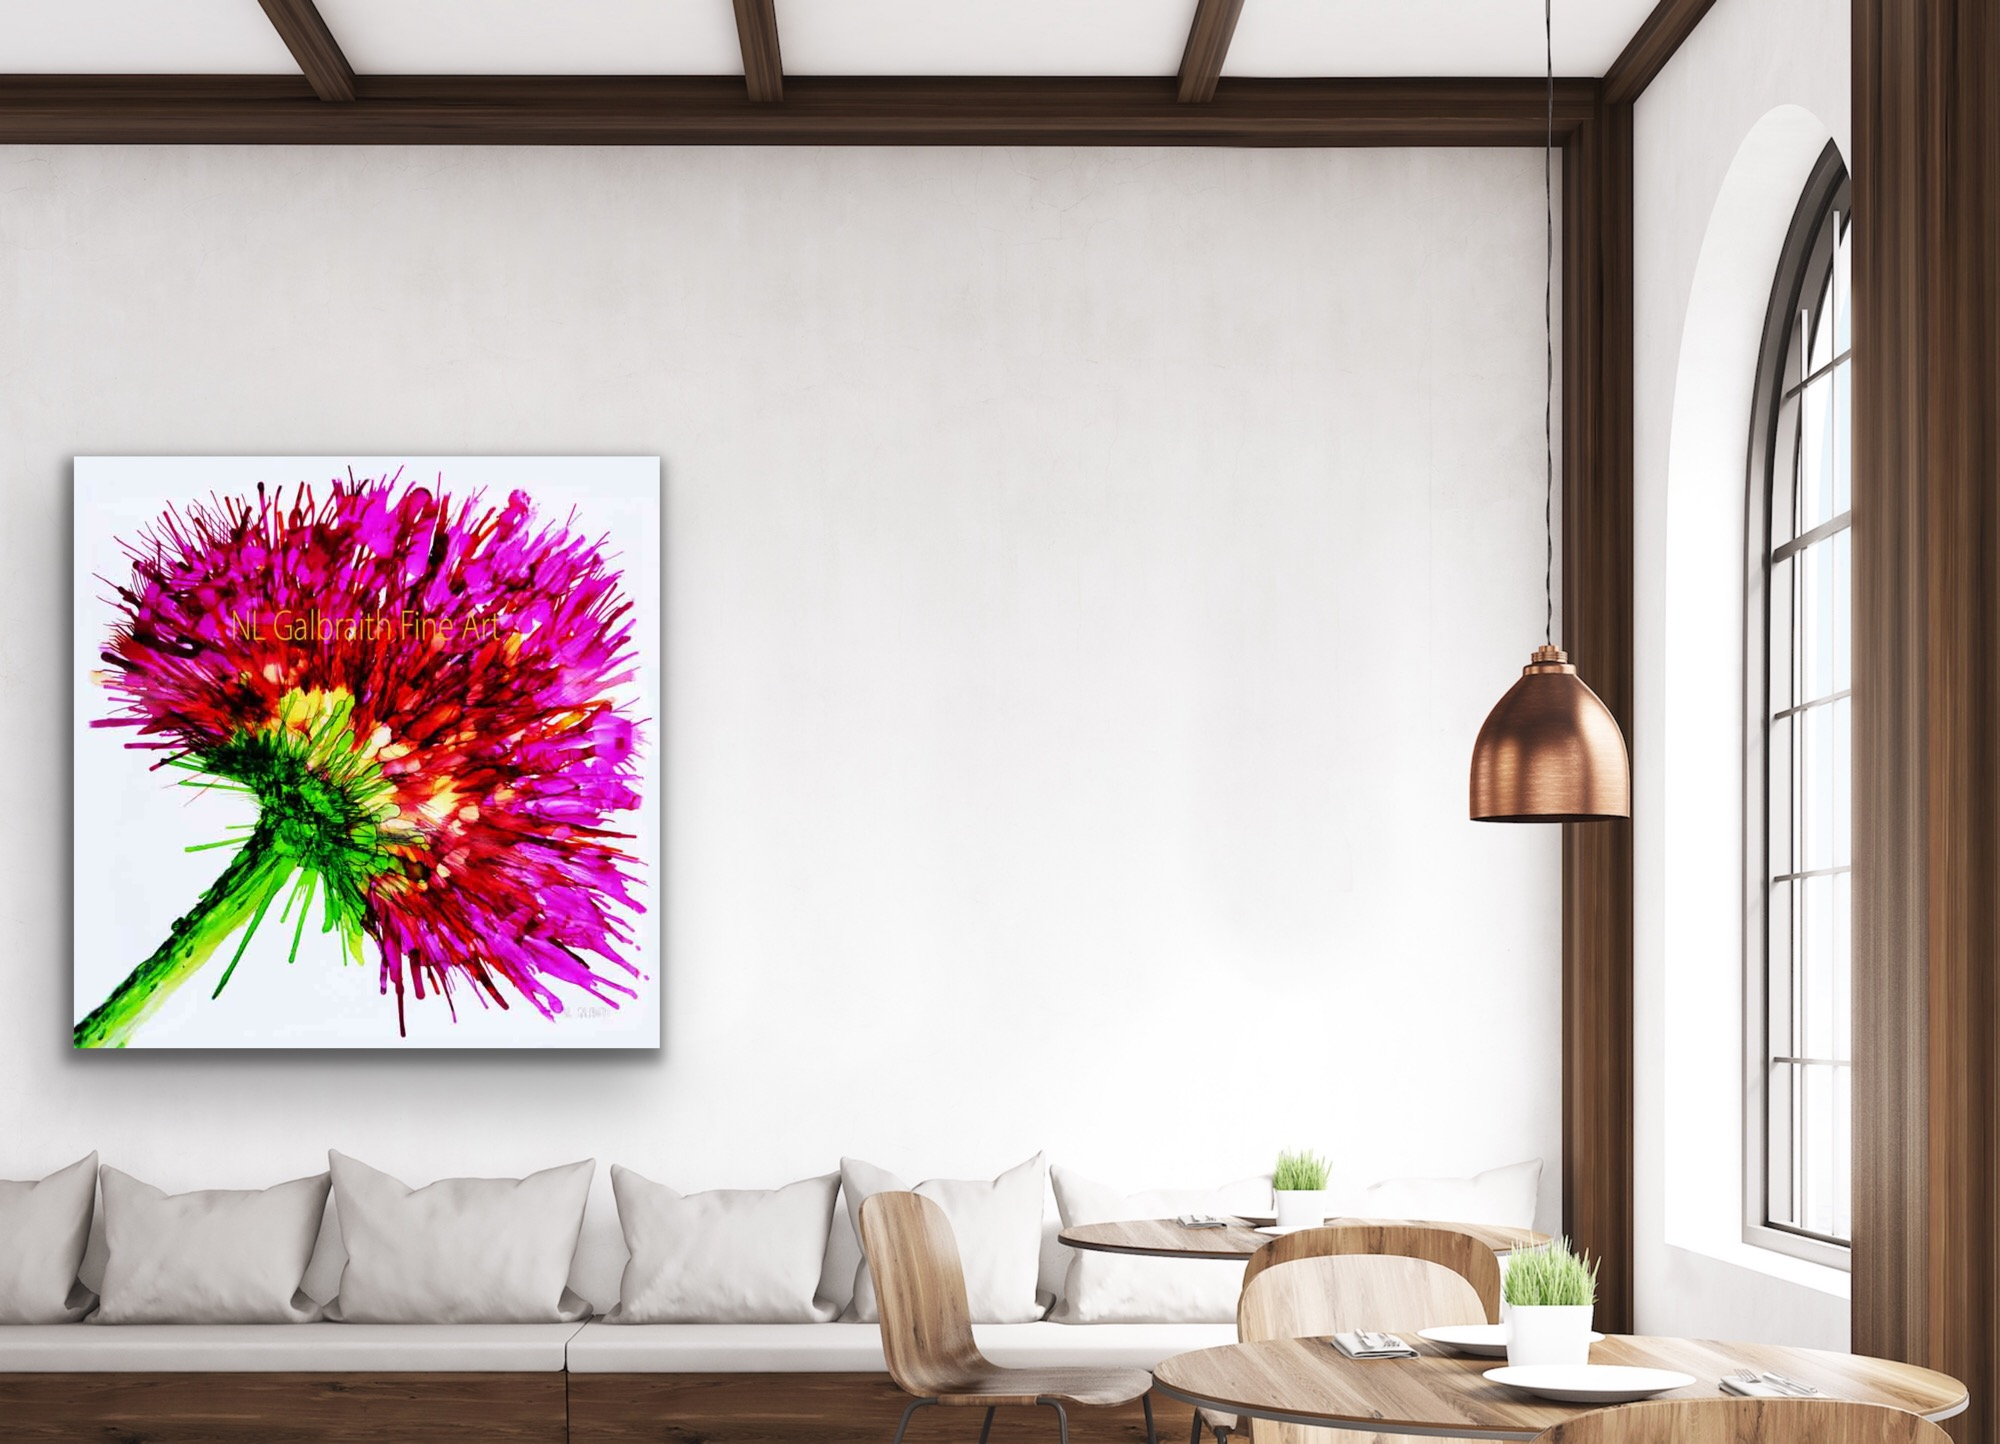 Large Pink Flower Graphic in a Living Room